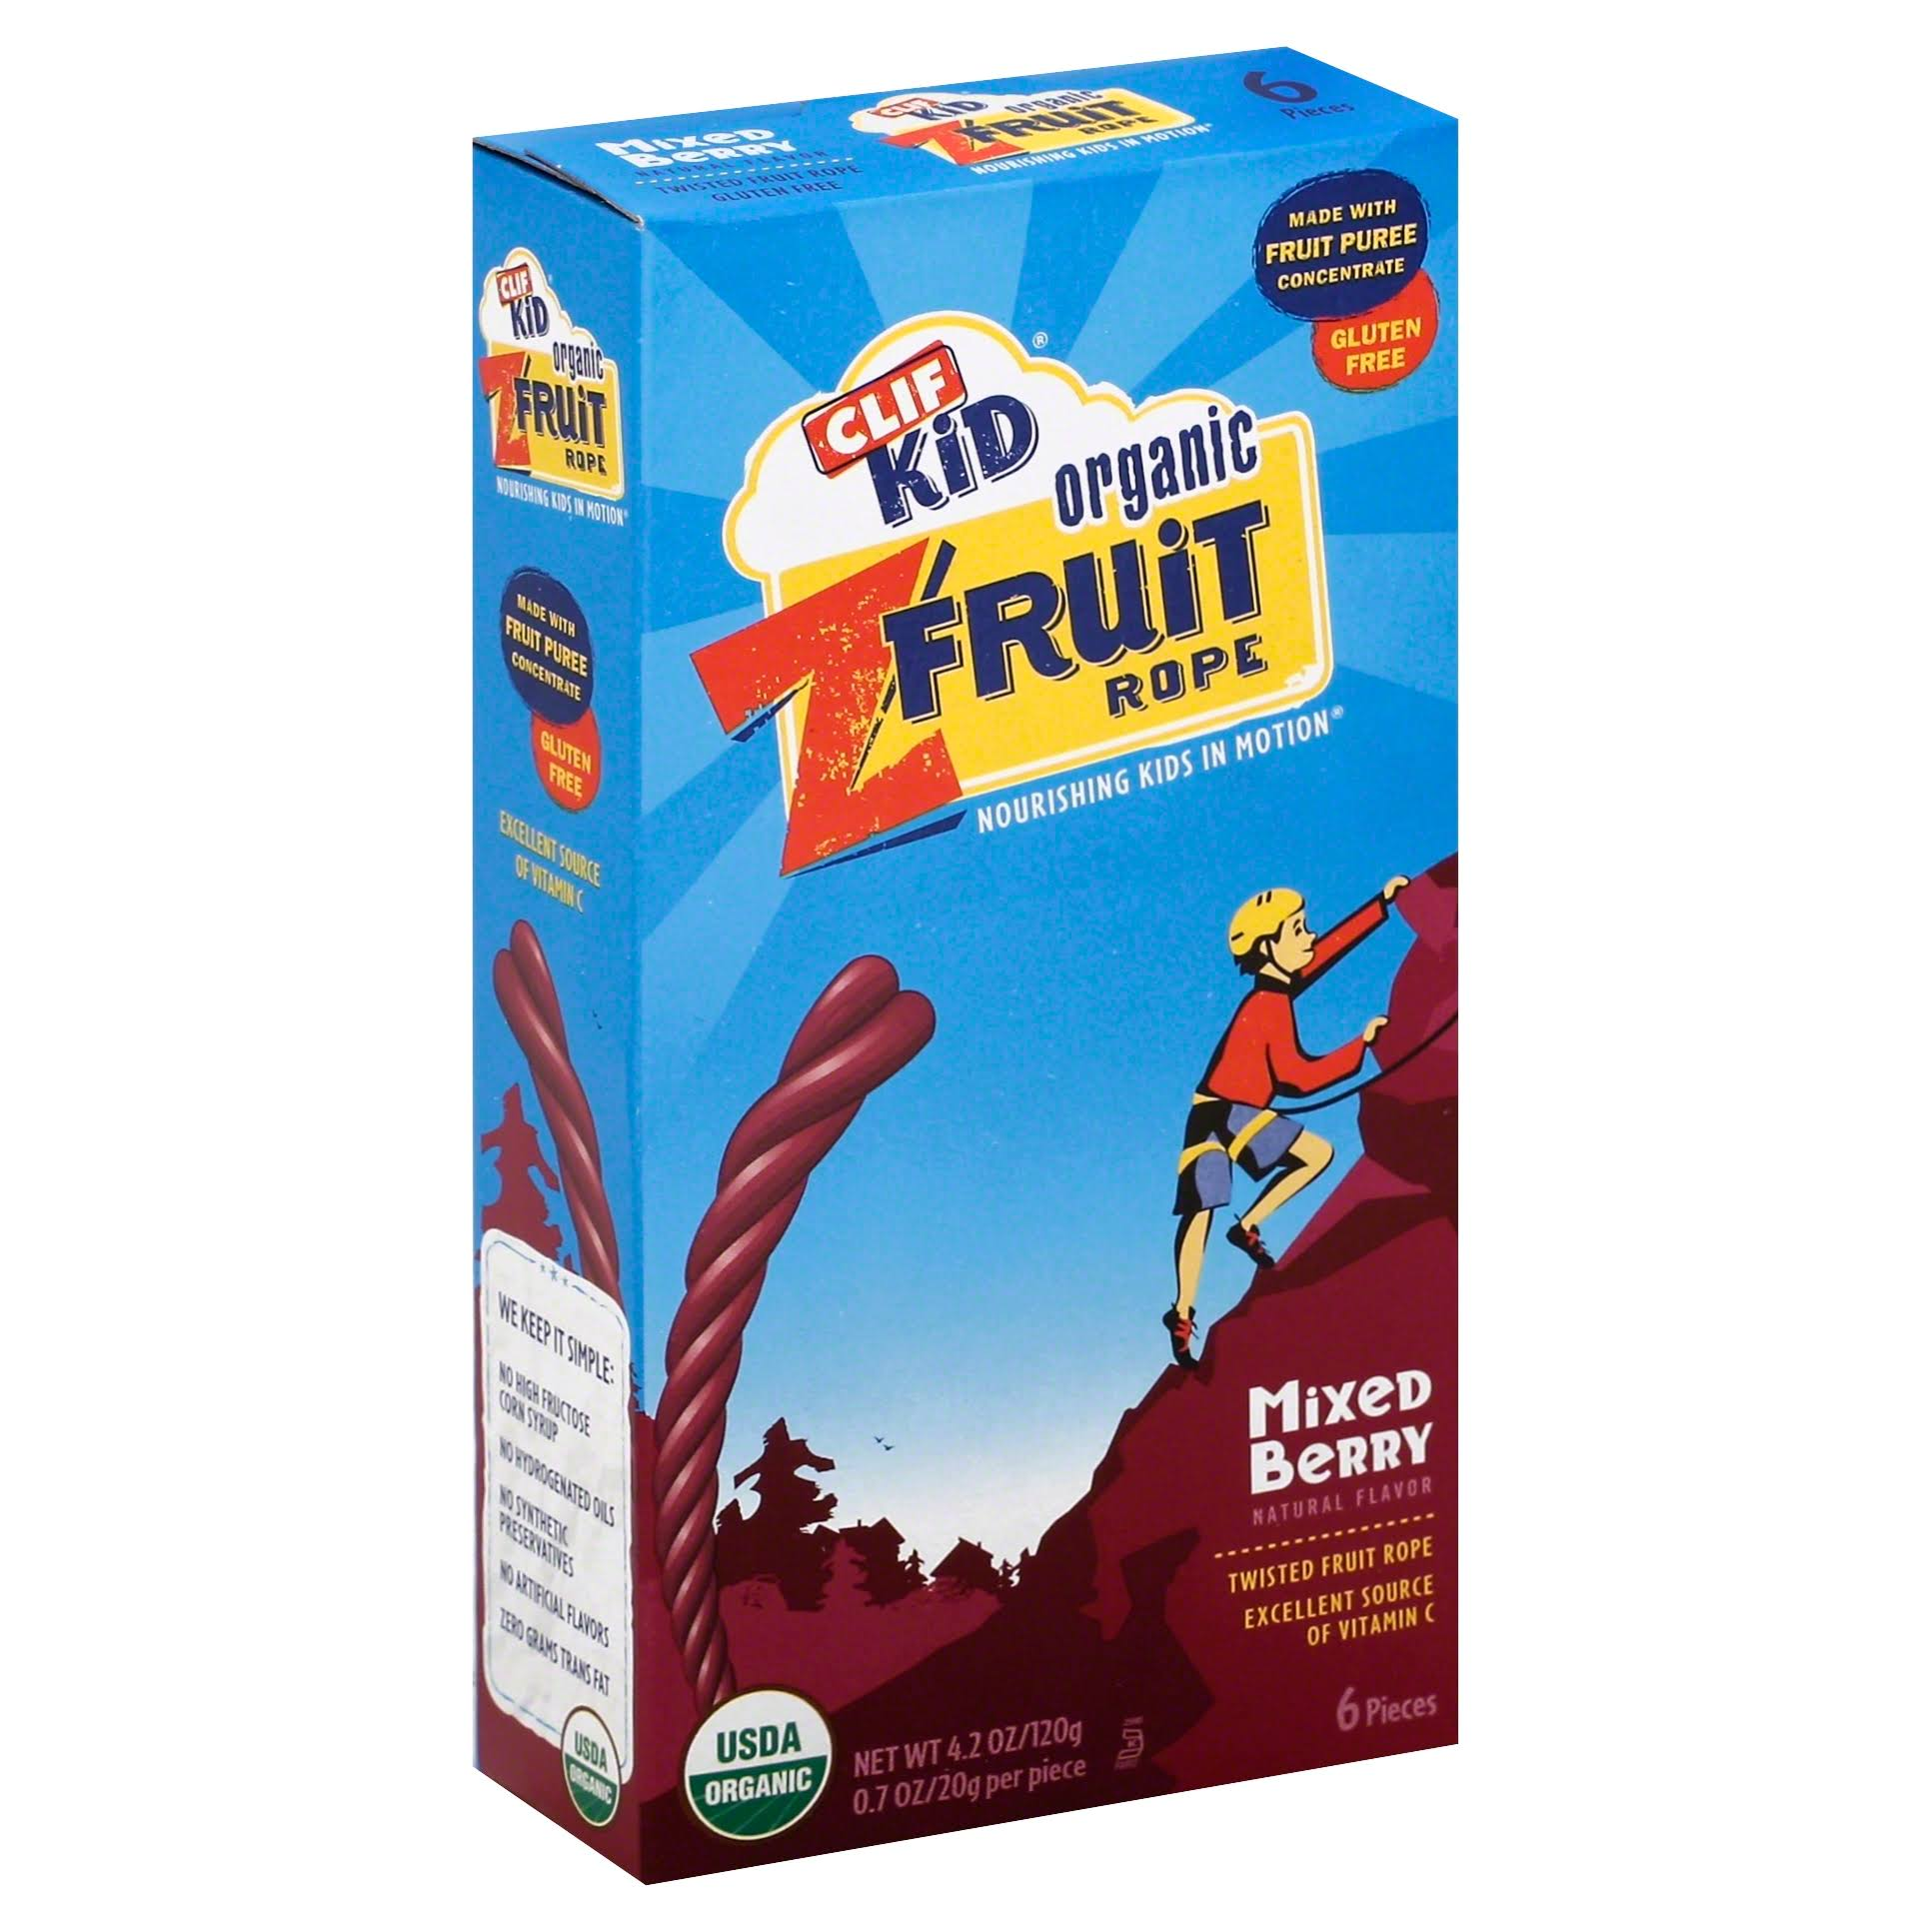 Clif Kid Organic Z Fruit Twisted Fruit Snack - Mixed Berry, 6ct